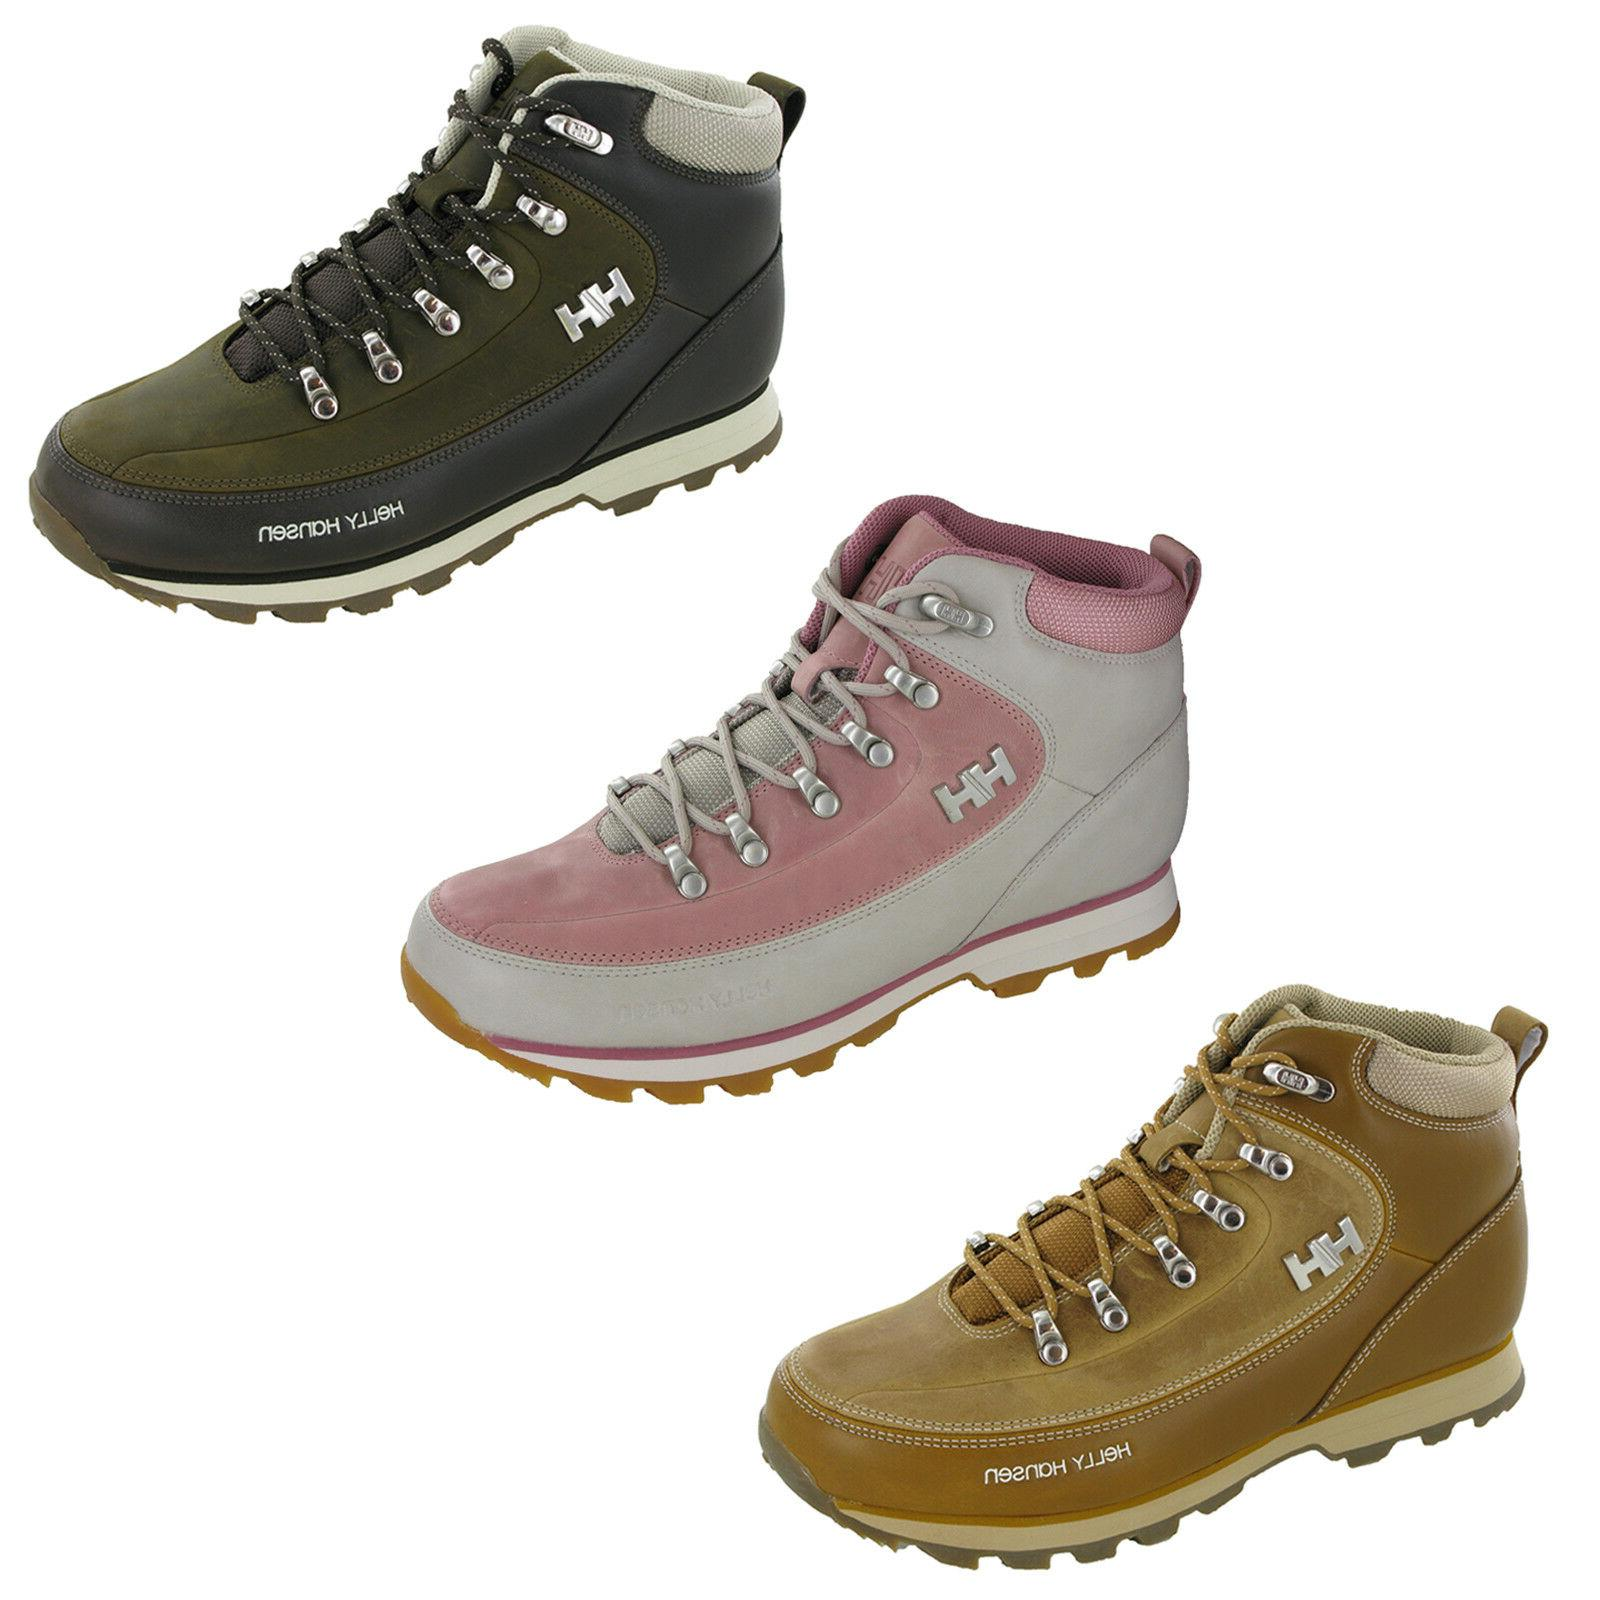 womens boots forester winter ankle walking water